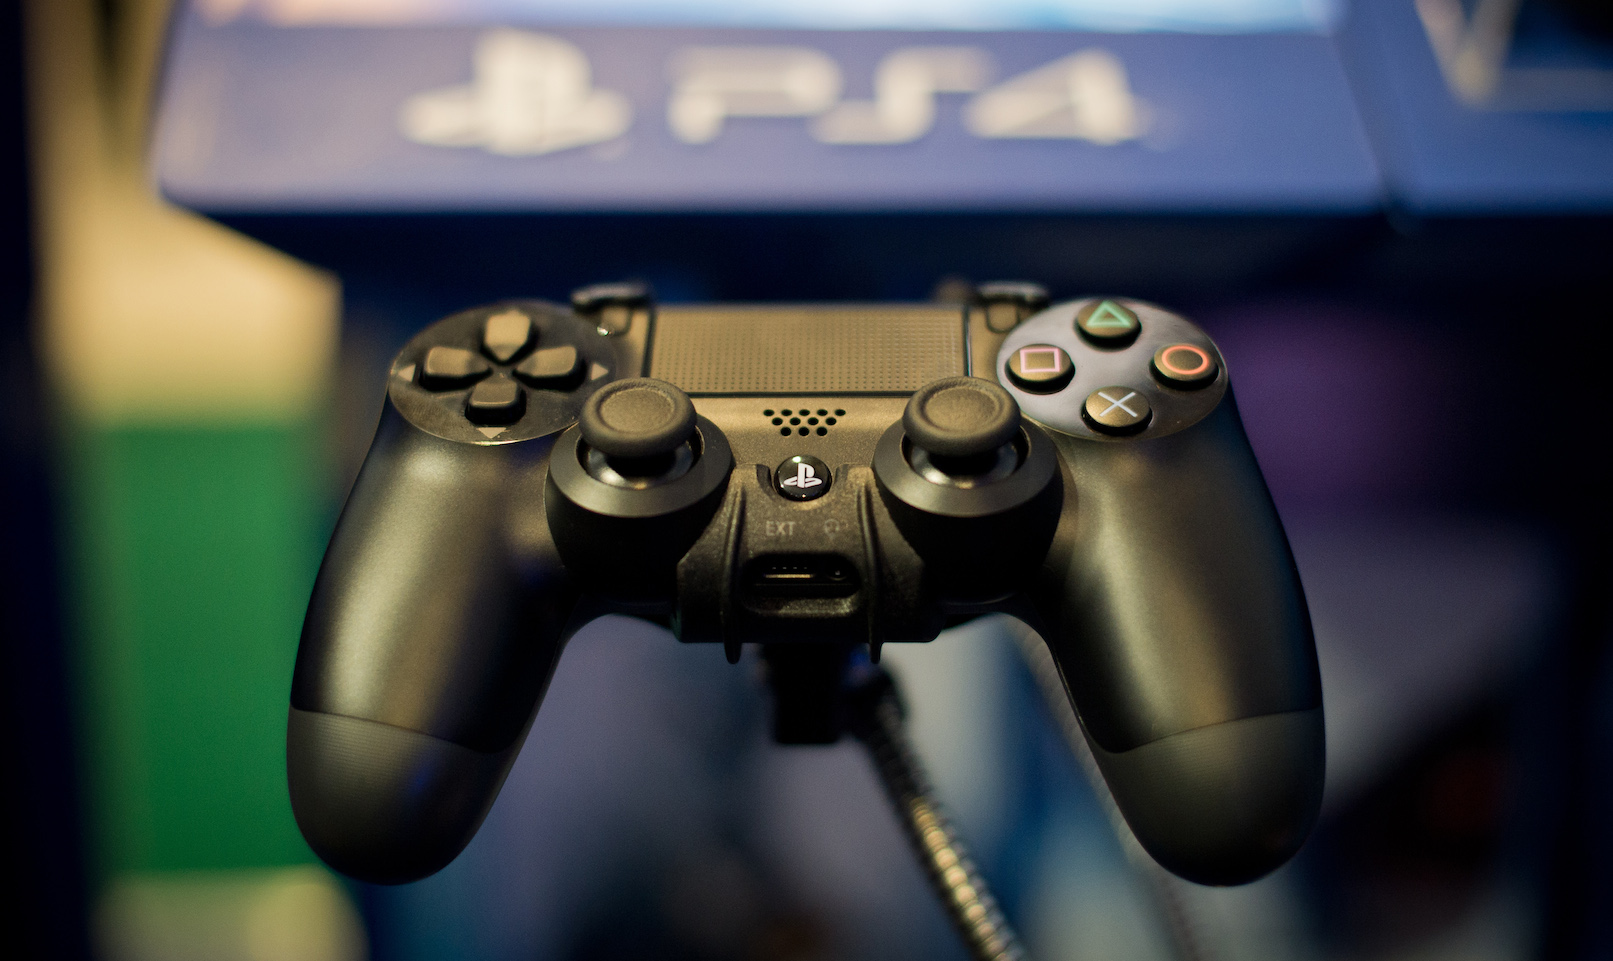 PS4 Getting An Update With New Video Editing App